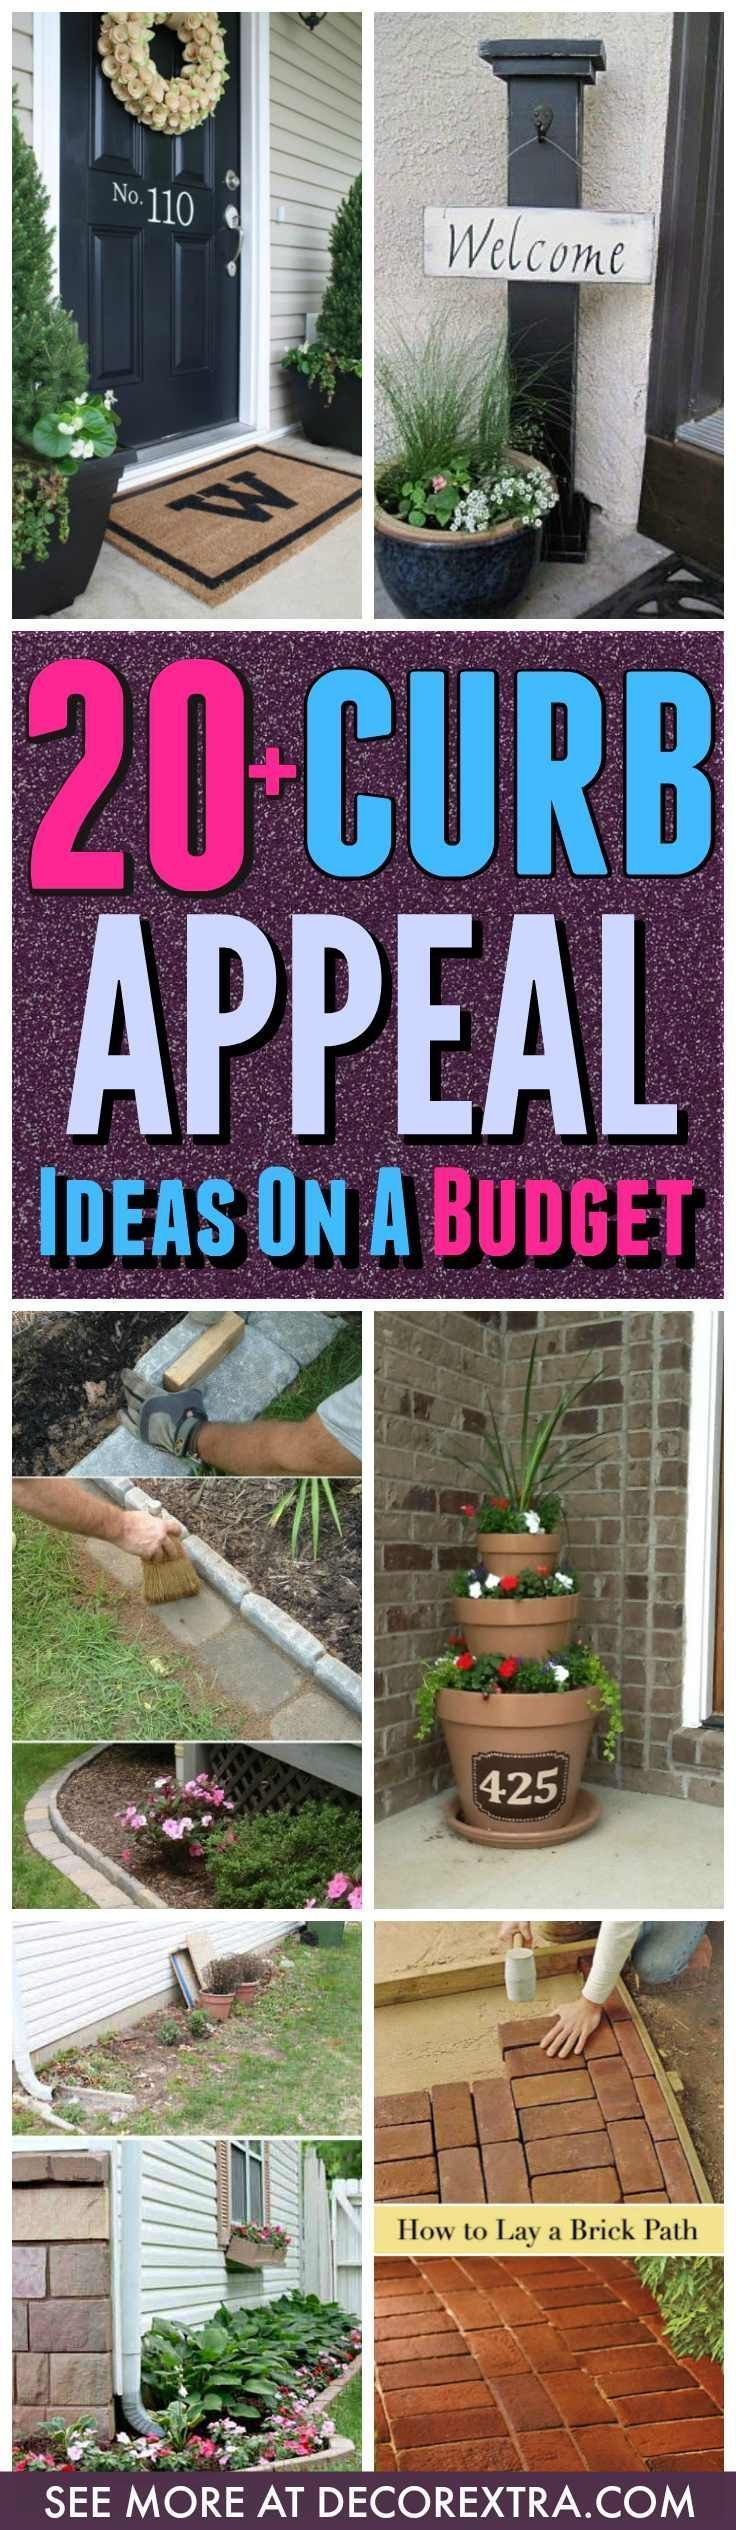 20+ Easy DIY Curb Appeal Ideas On A Budget That Will Totally Transform Your Home